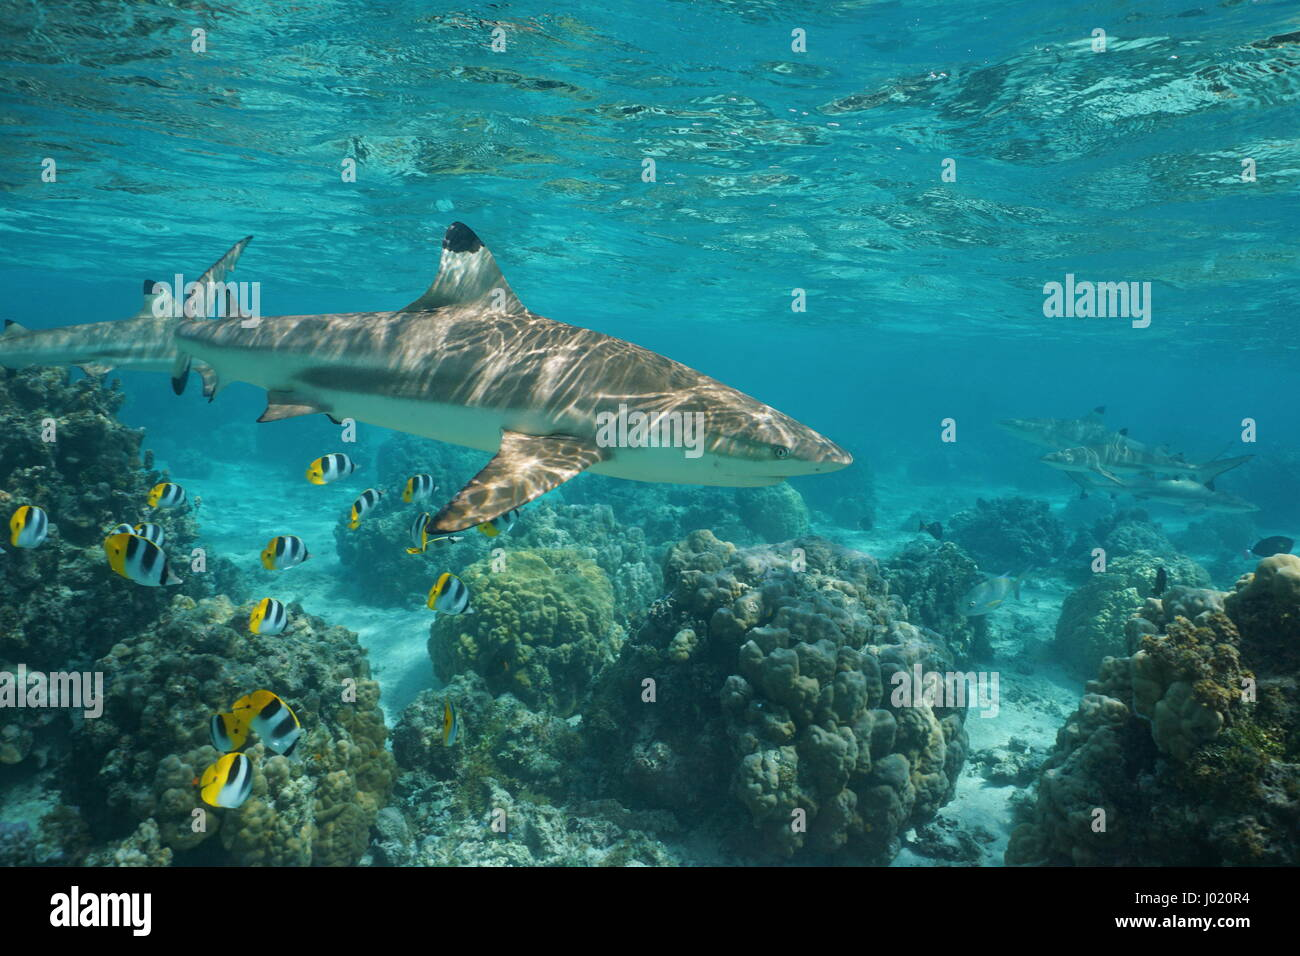 Blacktip reef shark underwater ocean with tropical fish butterflyfish and corals in a lagoon of a south Pacific - Stock Image